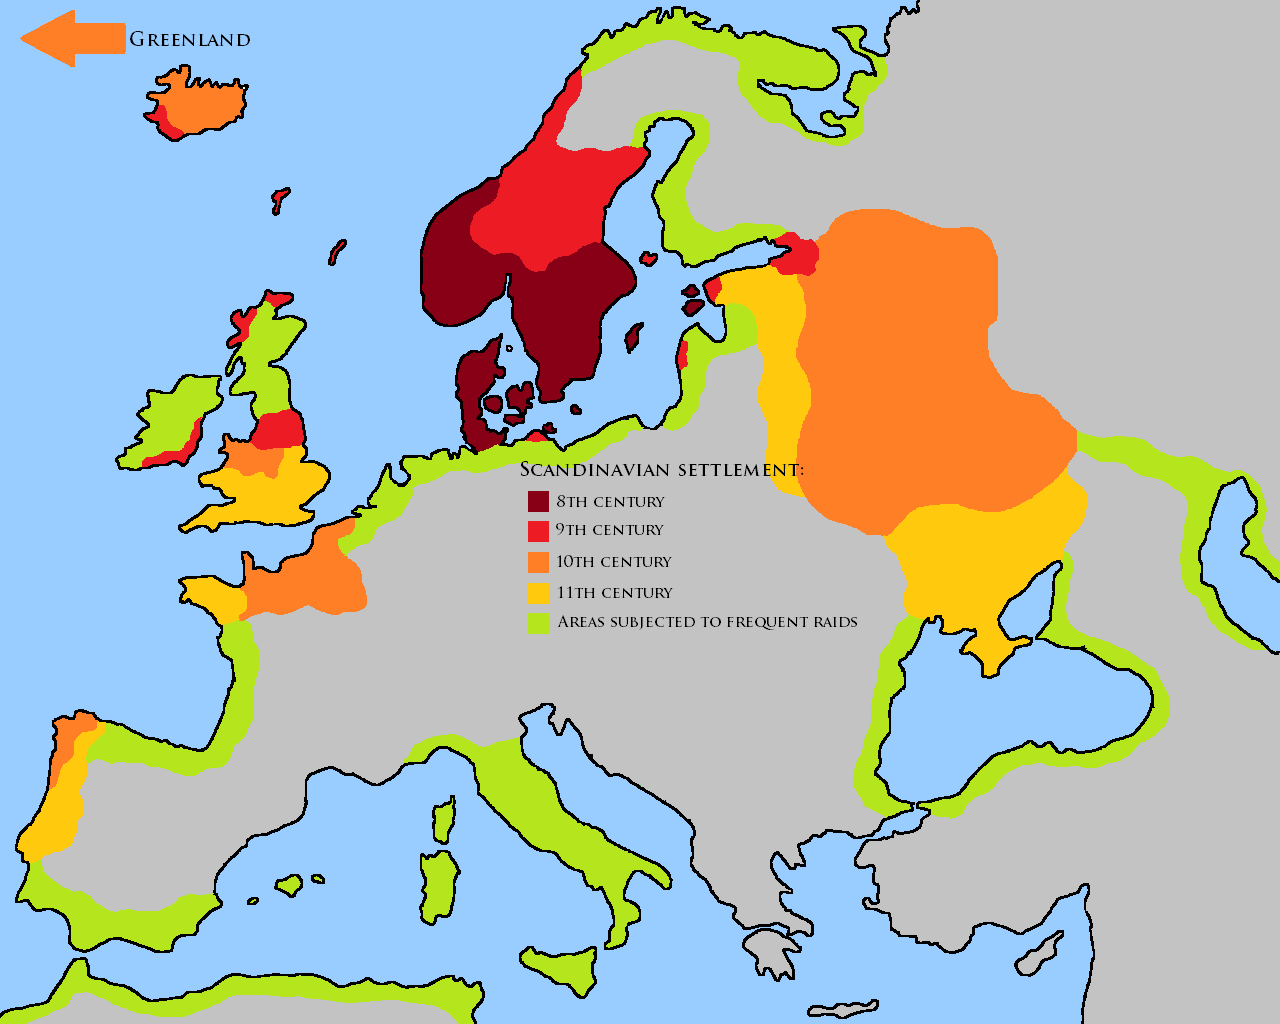 denmarks 11th century conquest of scandinavia essay I would suggest that the norman conquest in the 11th century was key in the space of a few years, england was taken over entirely by a norman french aristocracy deeply tied to france and western europe, its previous scandinavian dynasties marginalized or replaced entirely.